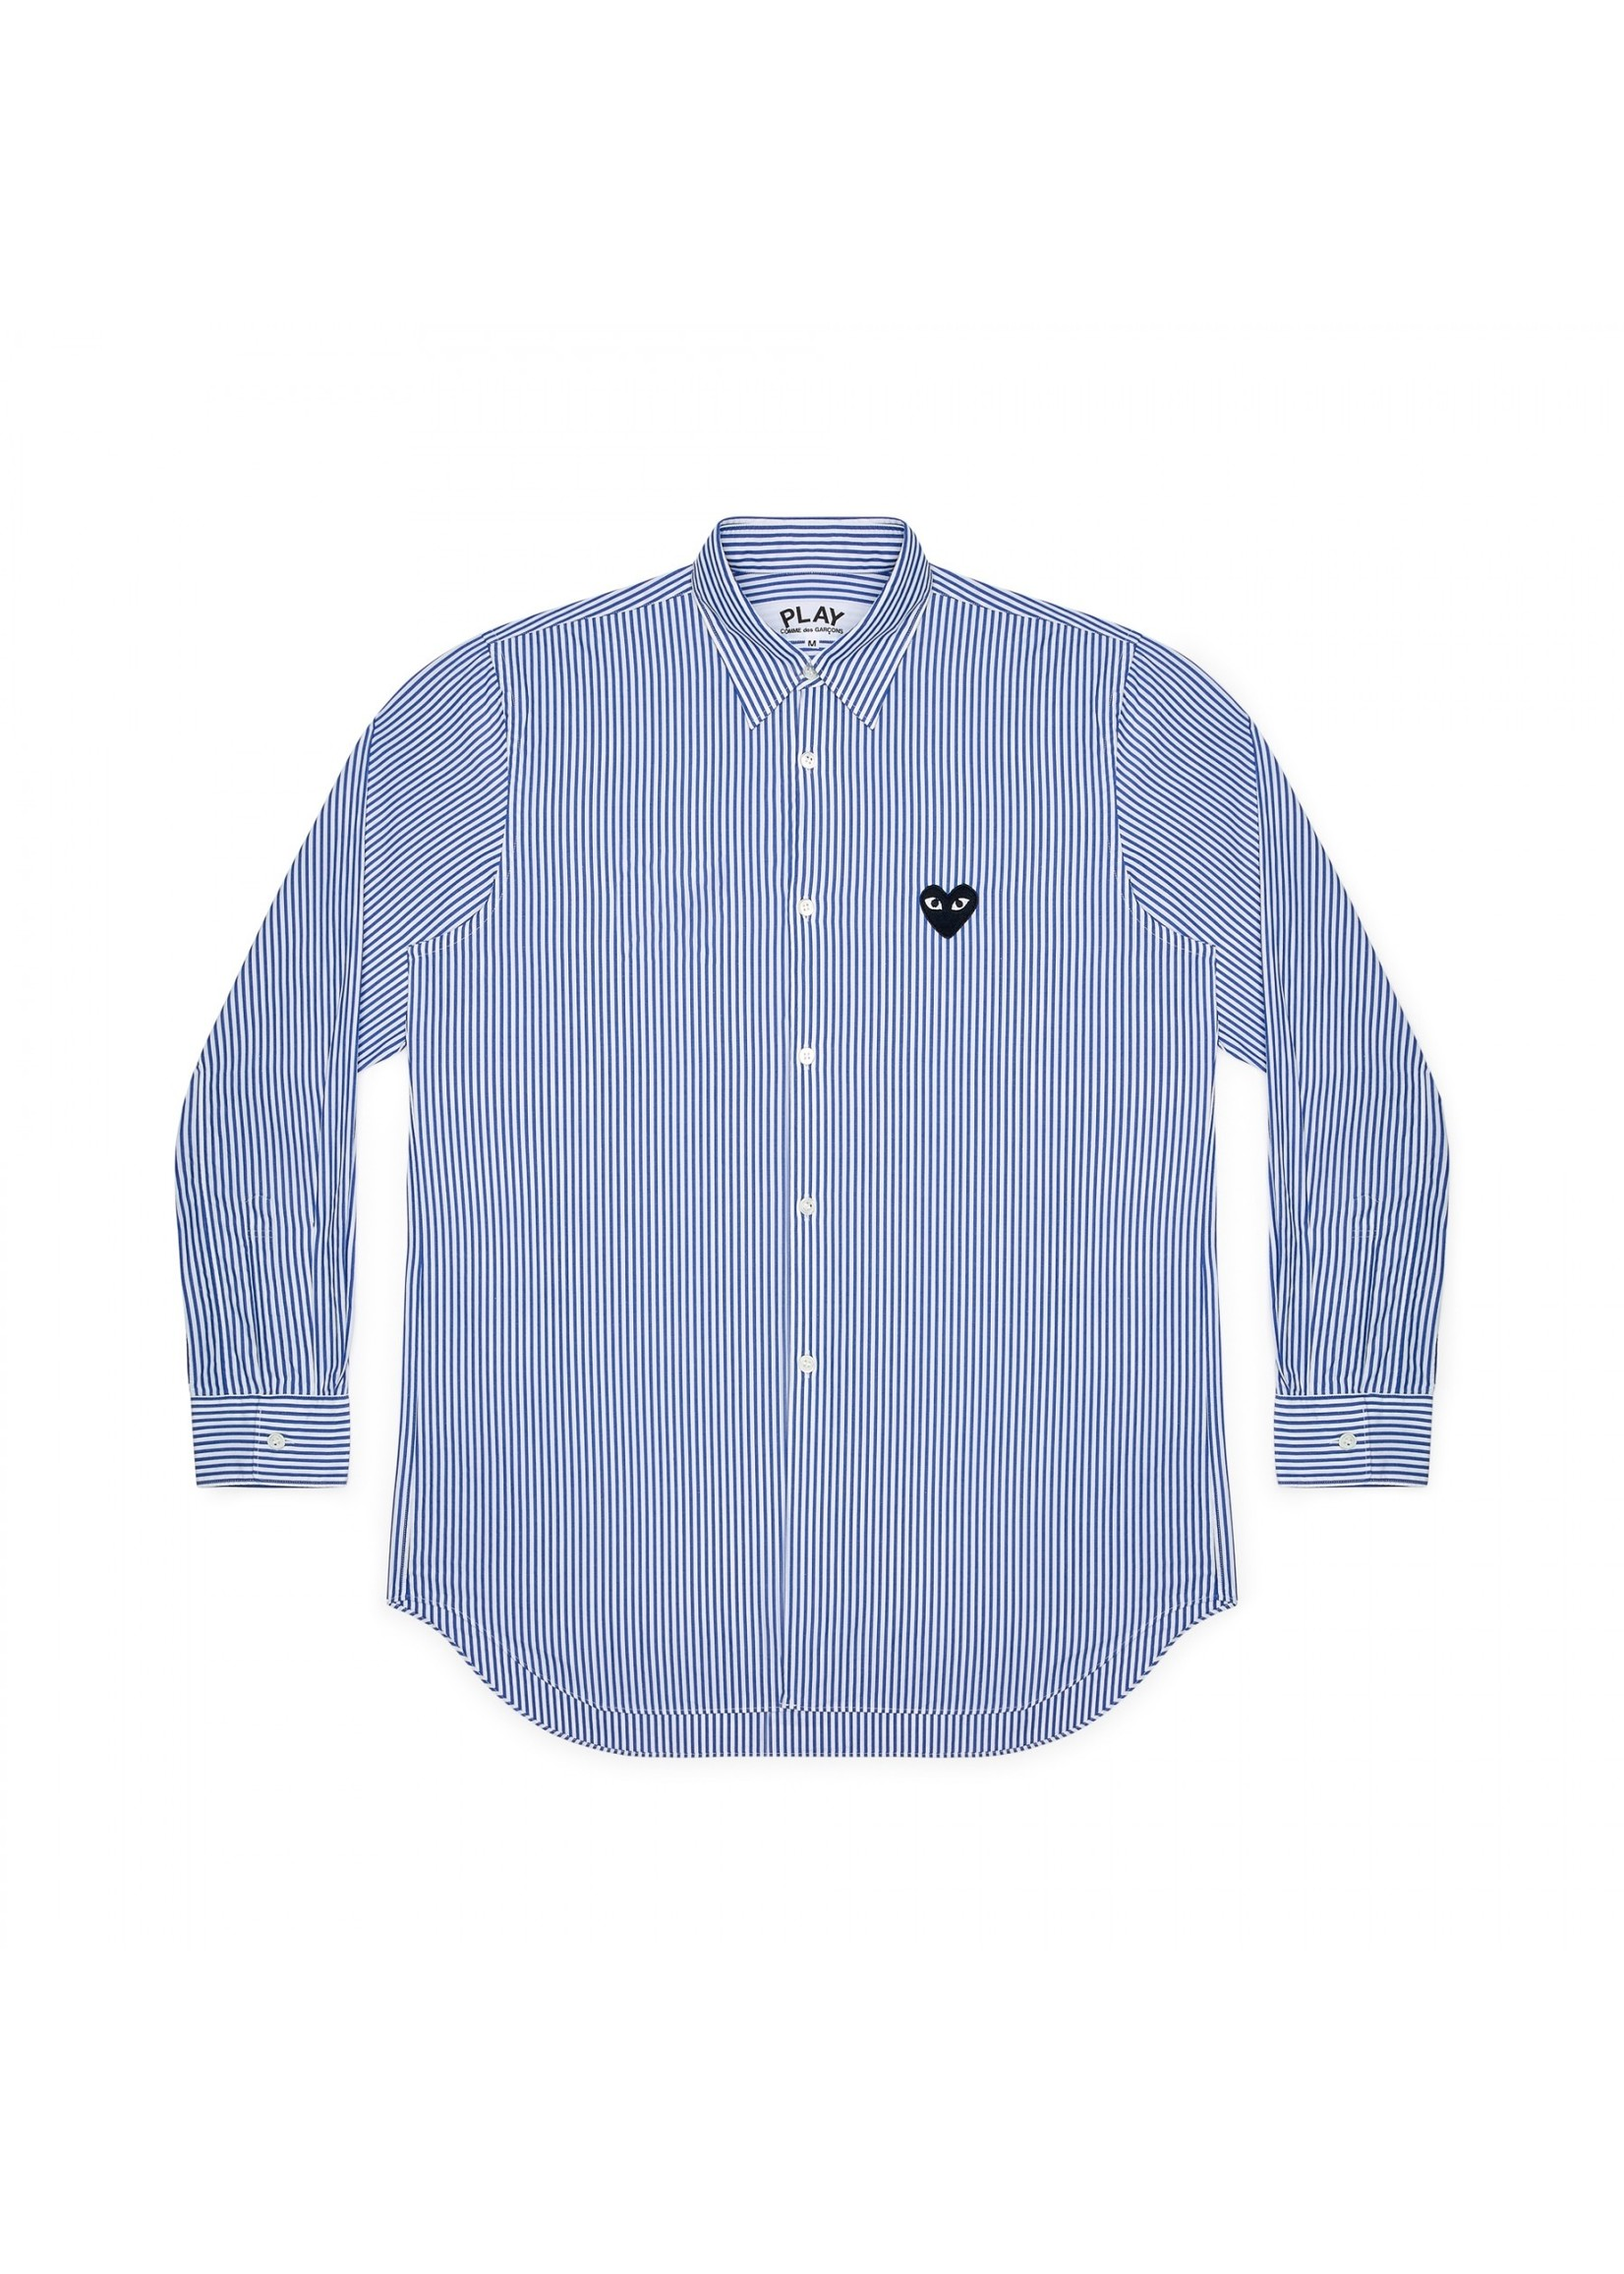 COMME des GARÇONS PLAY Blue Stripe Black Heart Button Up Shirt